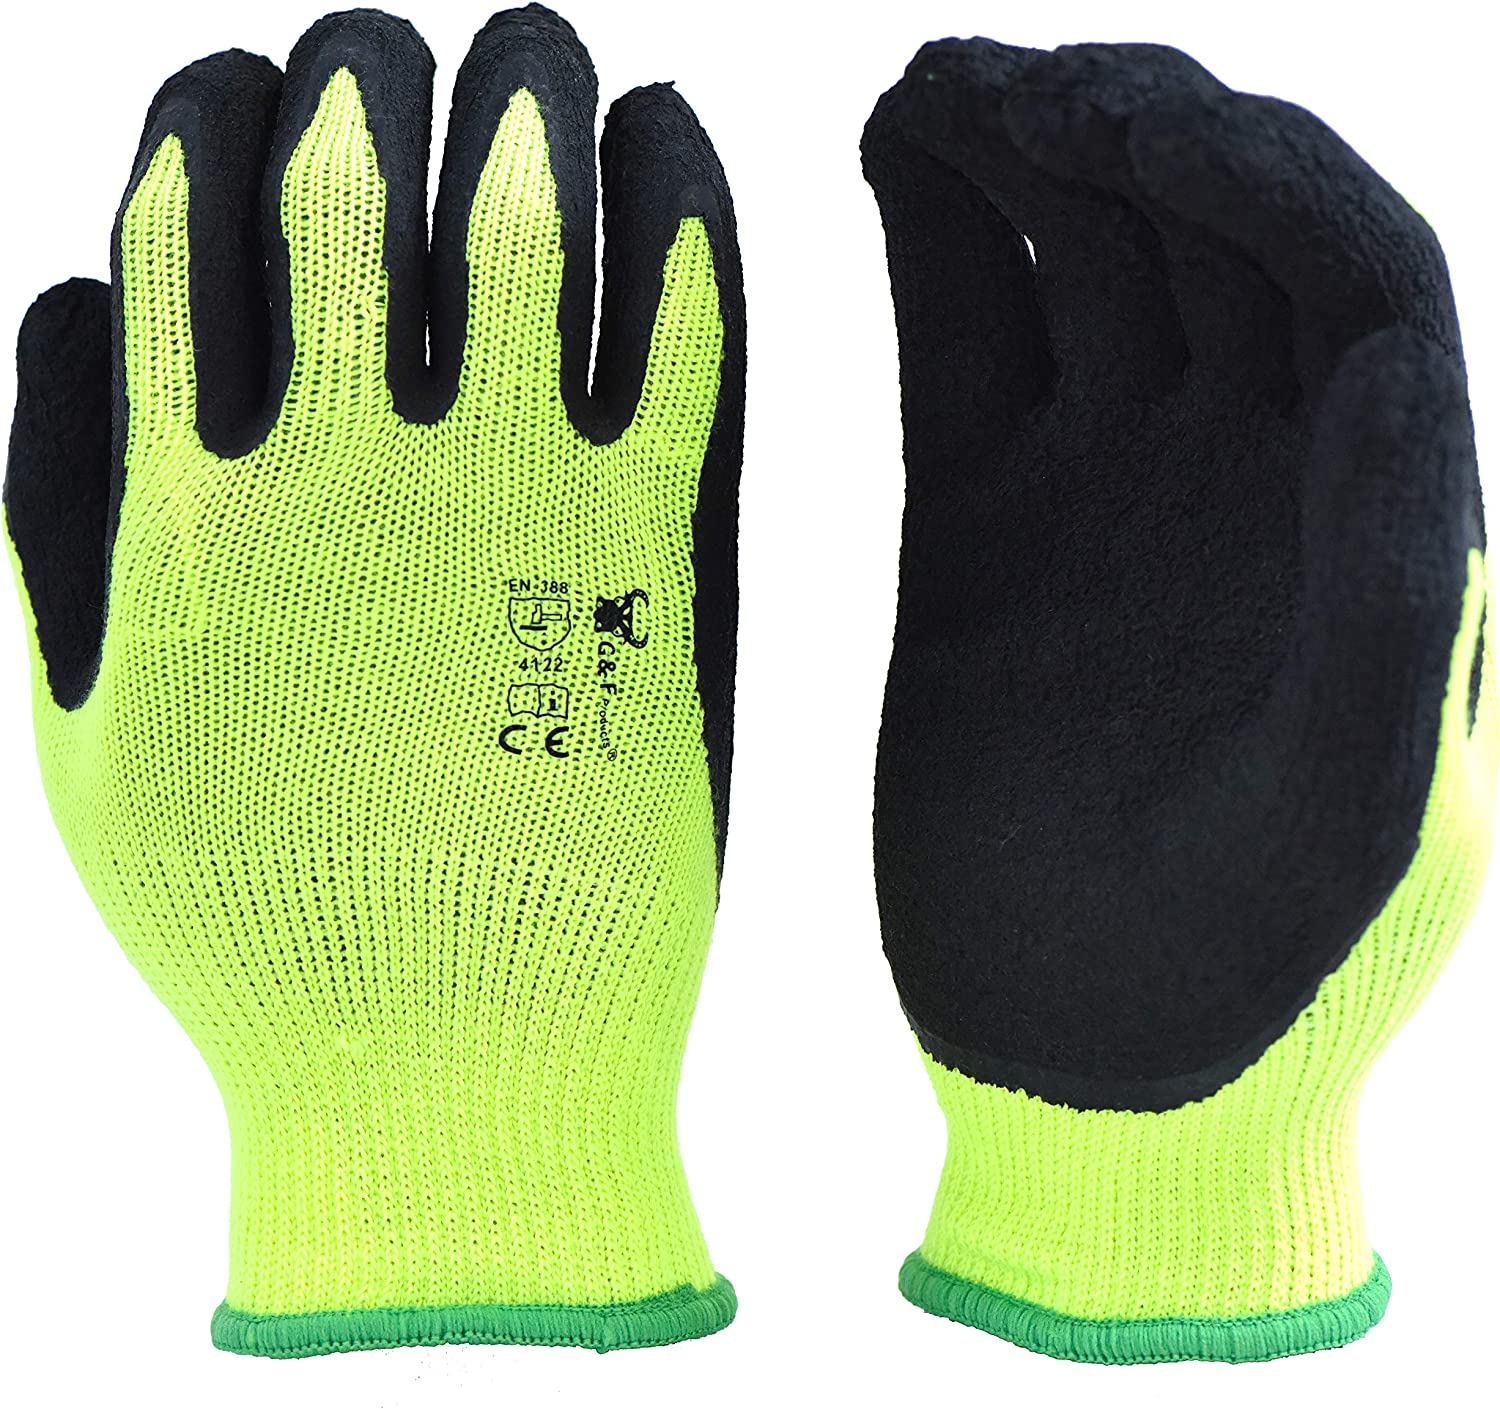 1516 Max 41% OFF 6 Pairs Pack Premium High Wo Visibility emissions Low Green Choice